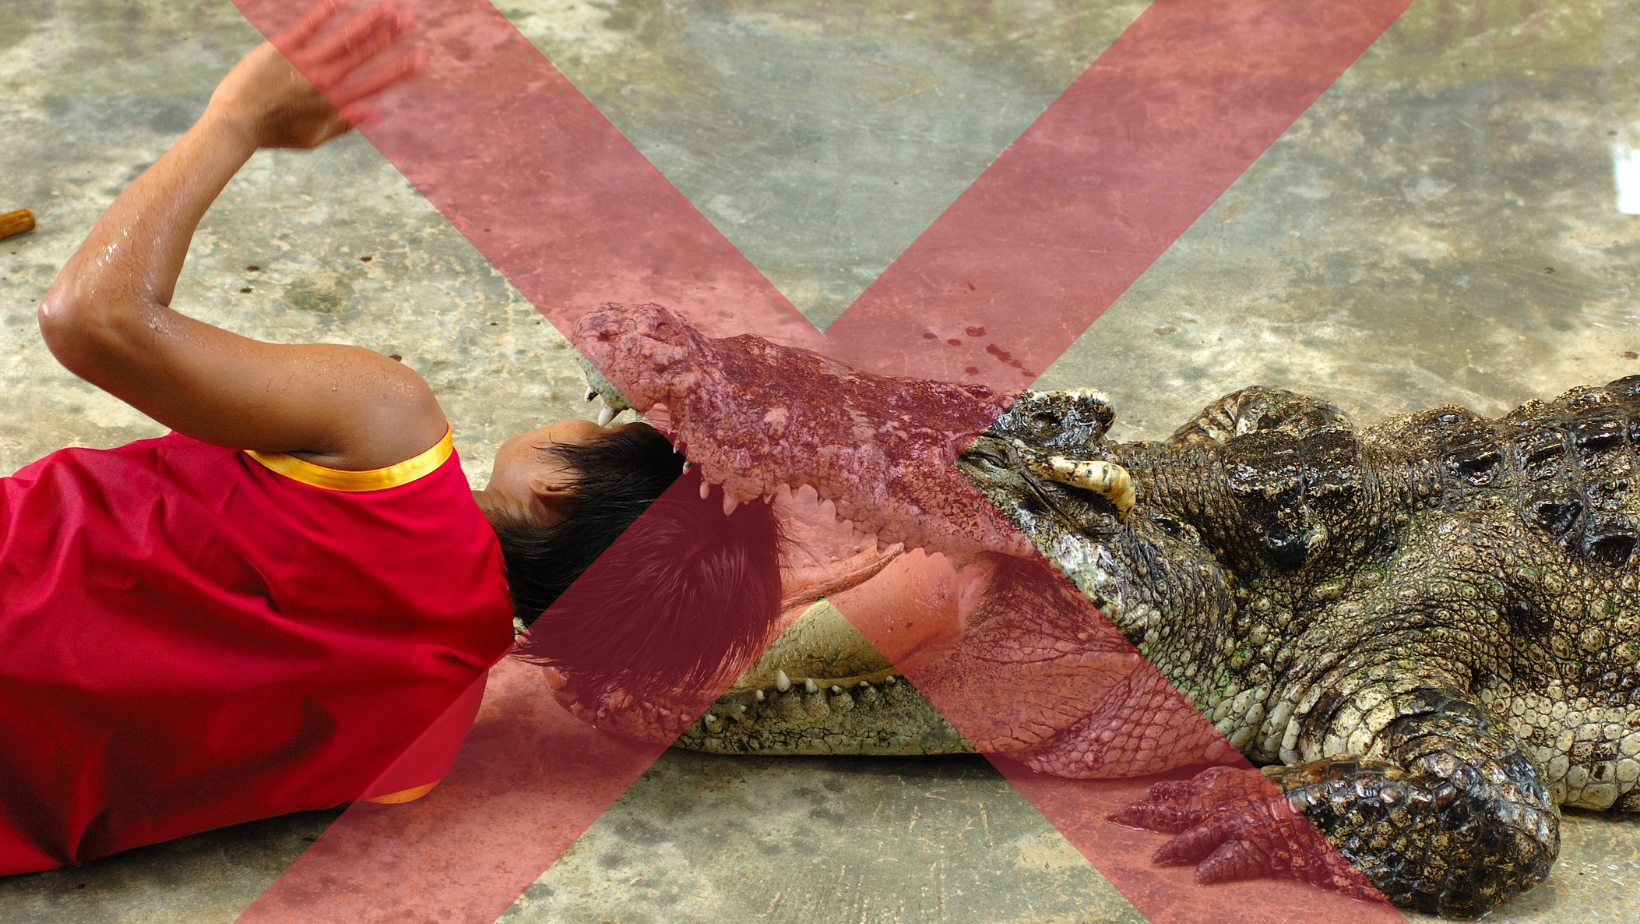 Person with their head inside a crocodile mouth at an unethical and extremely dangerous crocodile show.